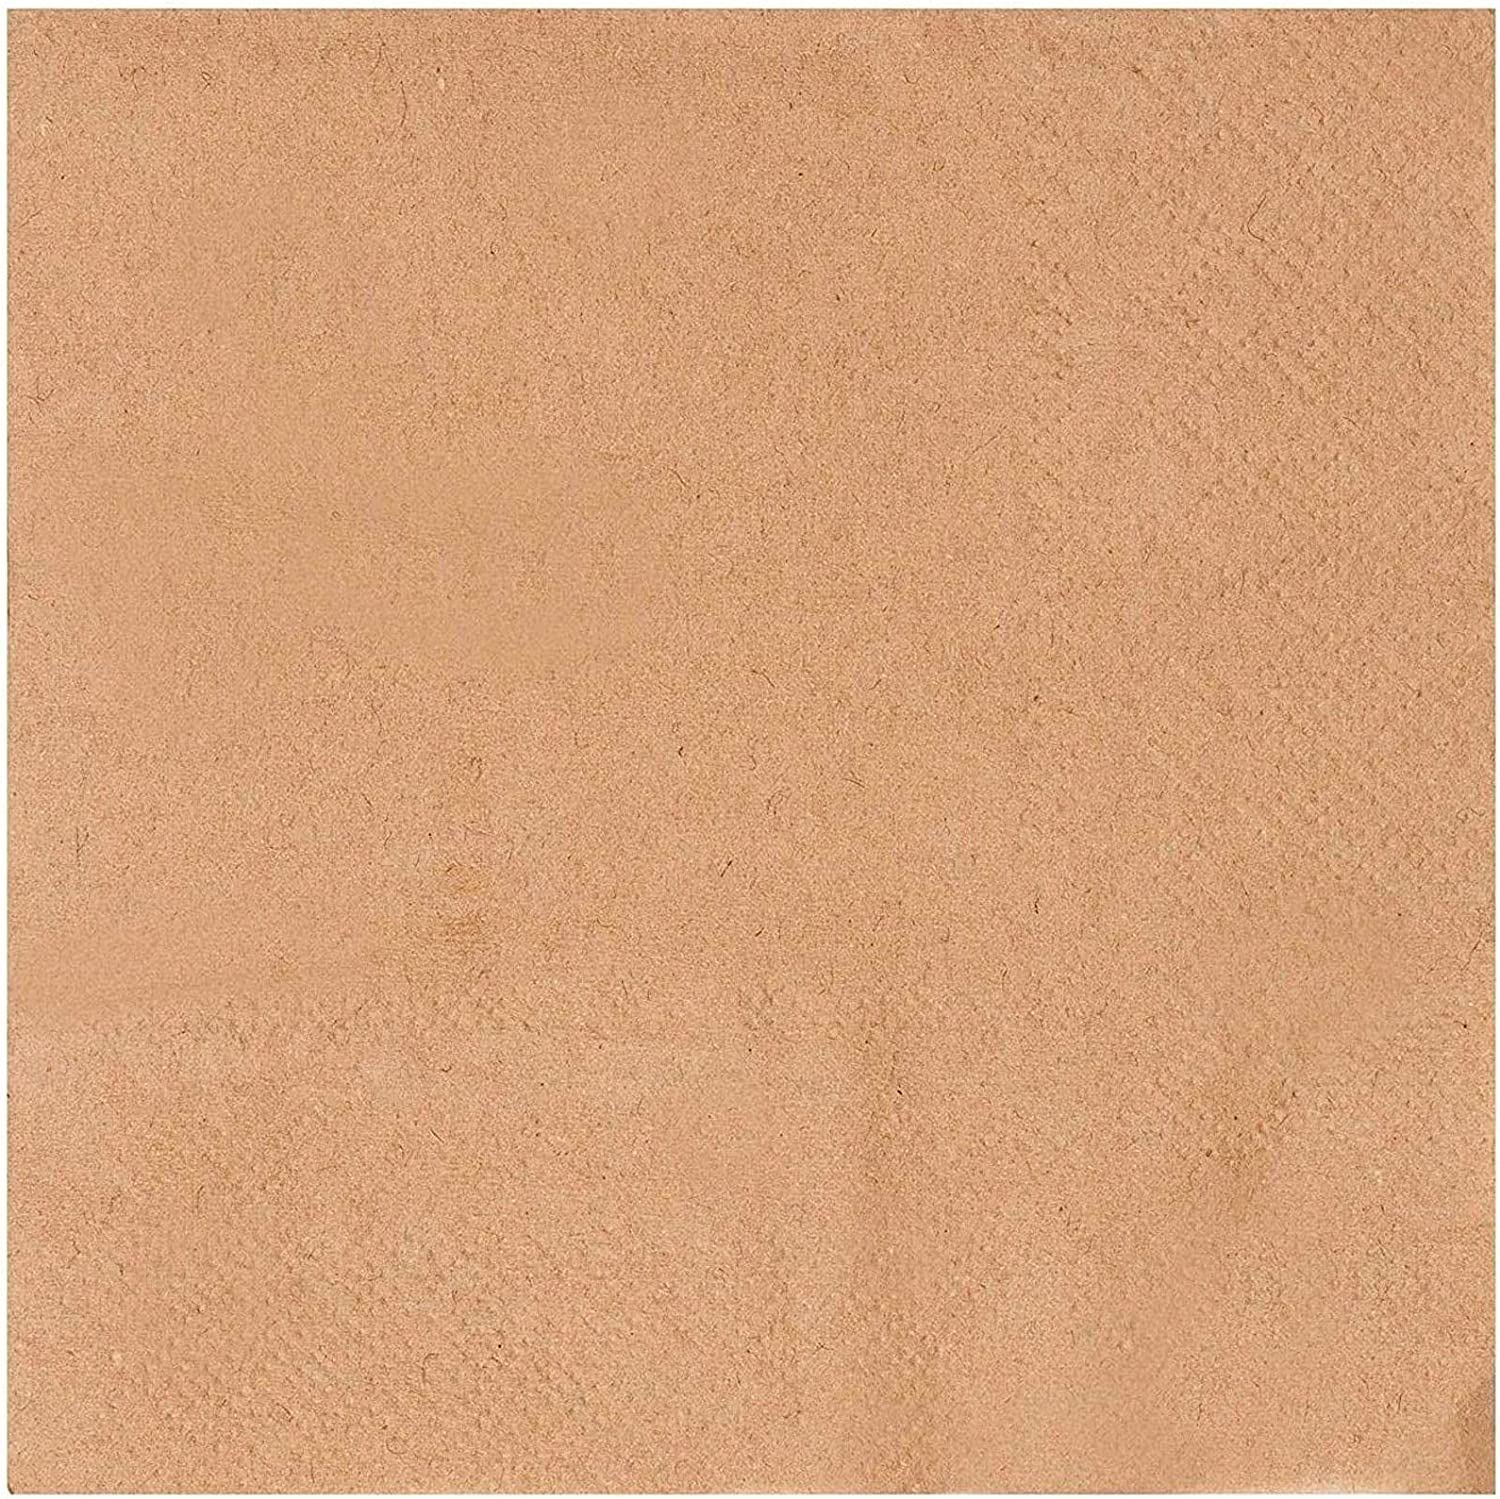 Kraft Party Supplies Paper Napkins Limited price Brown 5 In x 500 cheap Pack